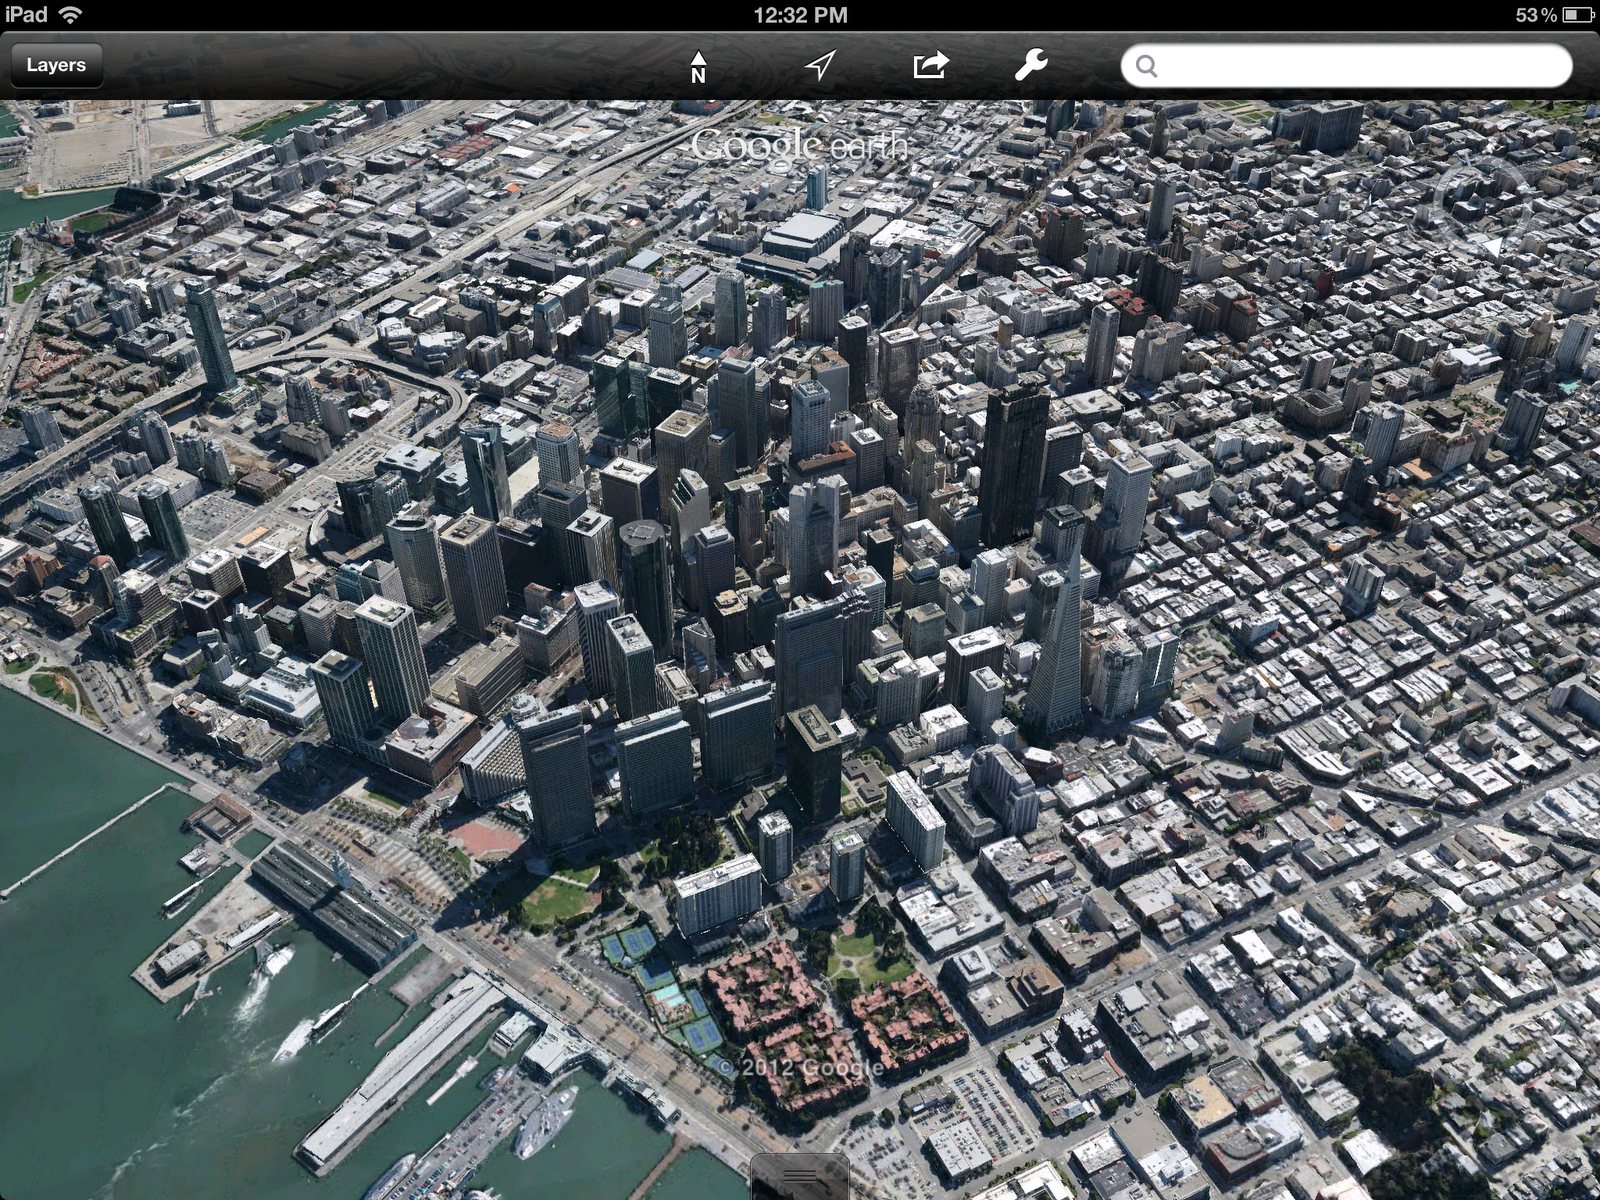 A 3D view of San Francisco in the newly-updated Google Earth app for iOS.